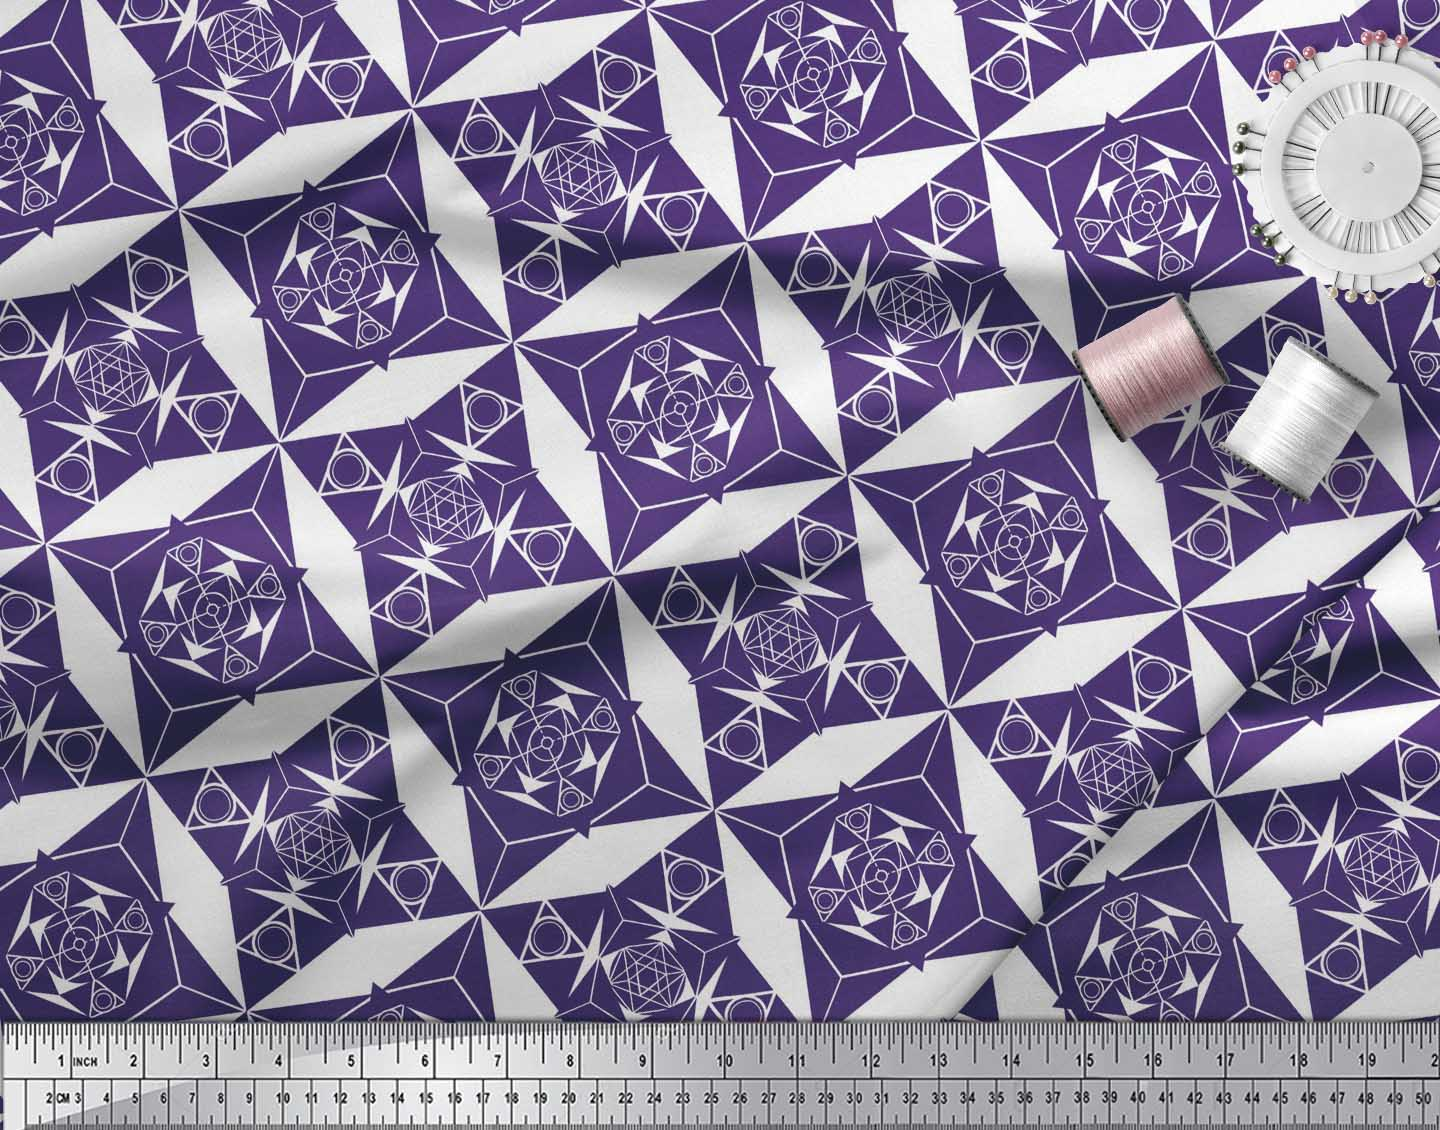 Soimoi-Purple-Cotton-Poplin-Fabric-Geometrical-Star-Geometric-Print-Sk2 thumbnail 3